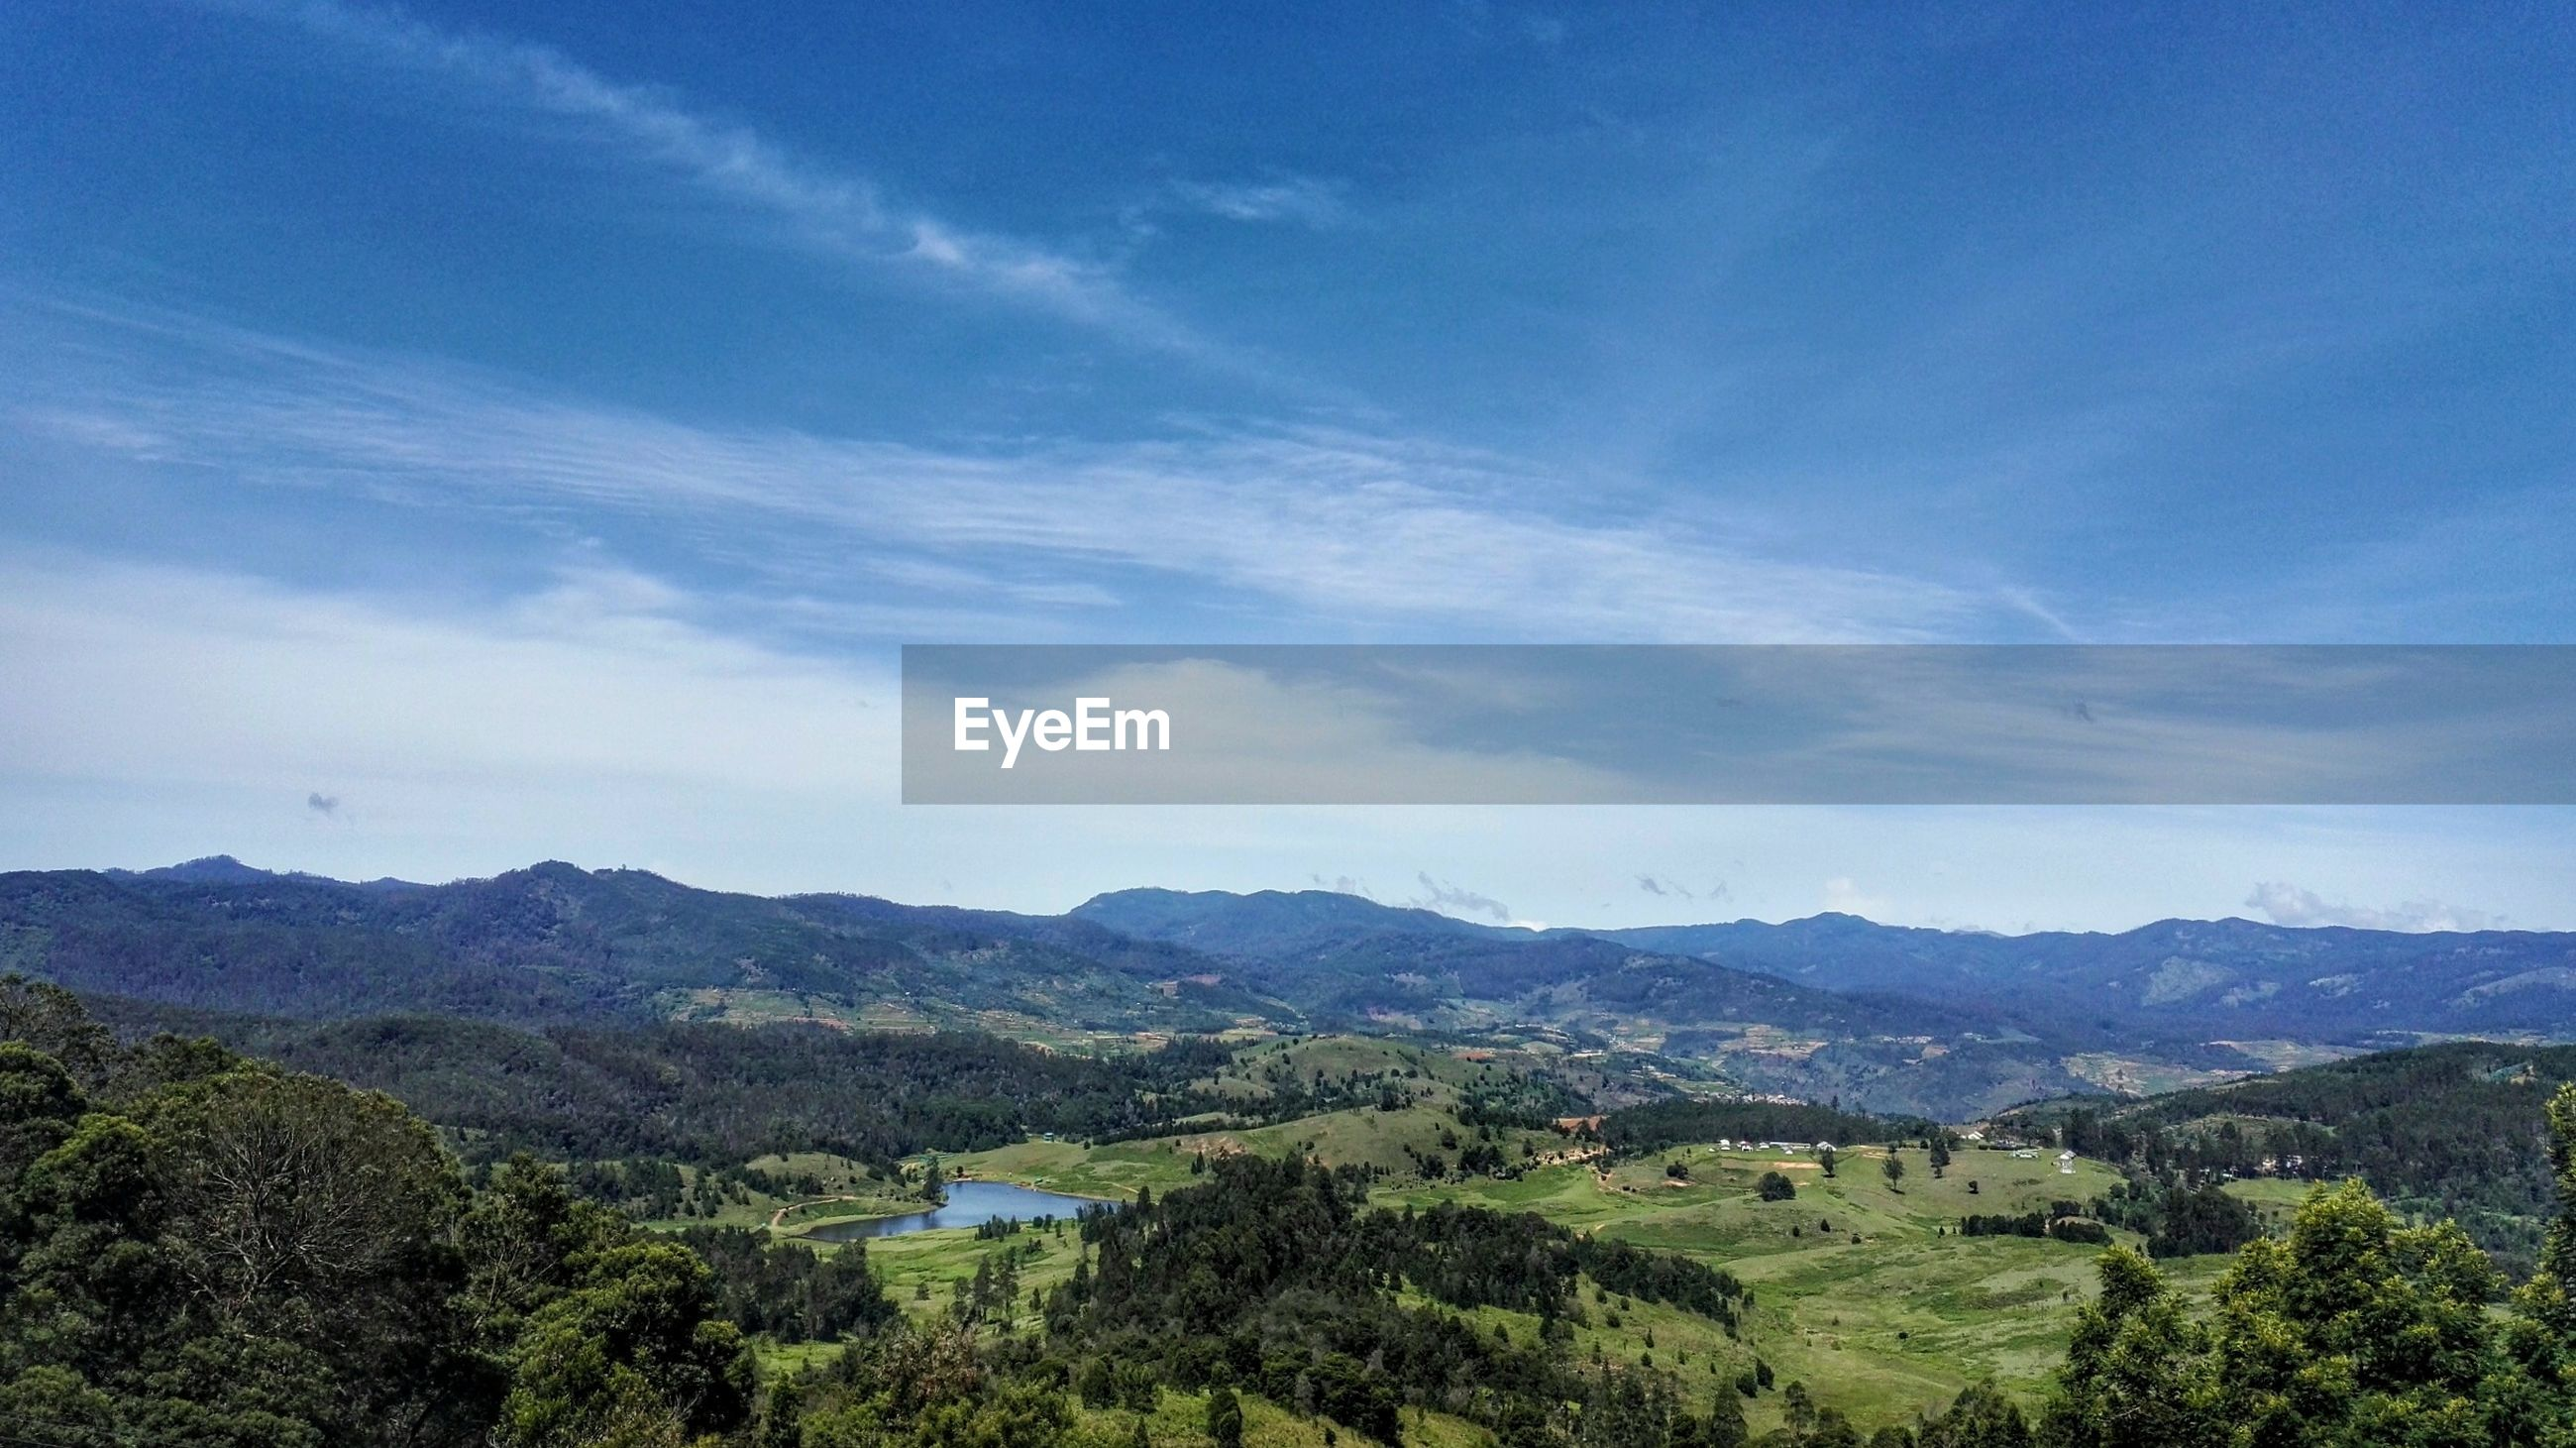 mountain, tranquil scene, scenics, tranquility, landscape, beauty in nature, mountain range, tree, sky, blue, nature, idyllic, non-urban scene, green color, cloud - sky, cloud, hill, day, outdoors, remote, lush foliage, growth, no people, horizon over land, non urban scene, green, majestic, tourism, elevated view